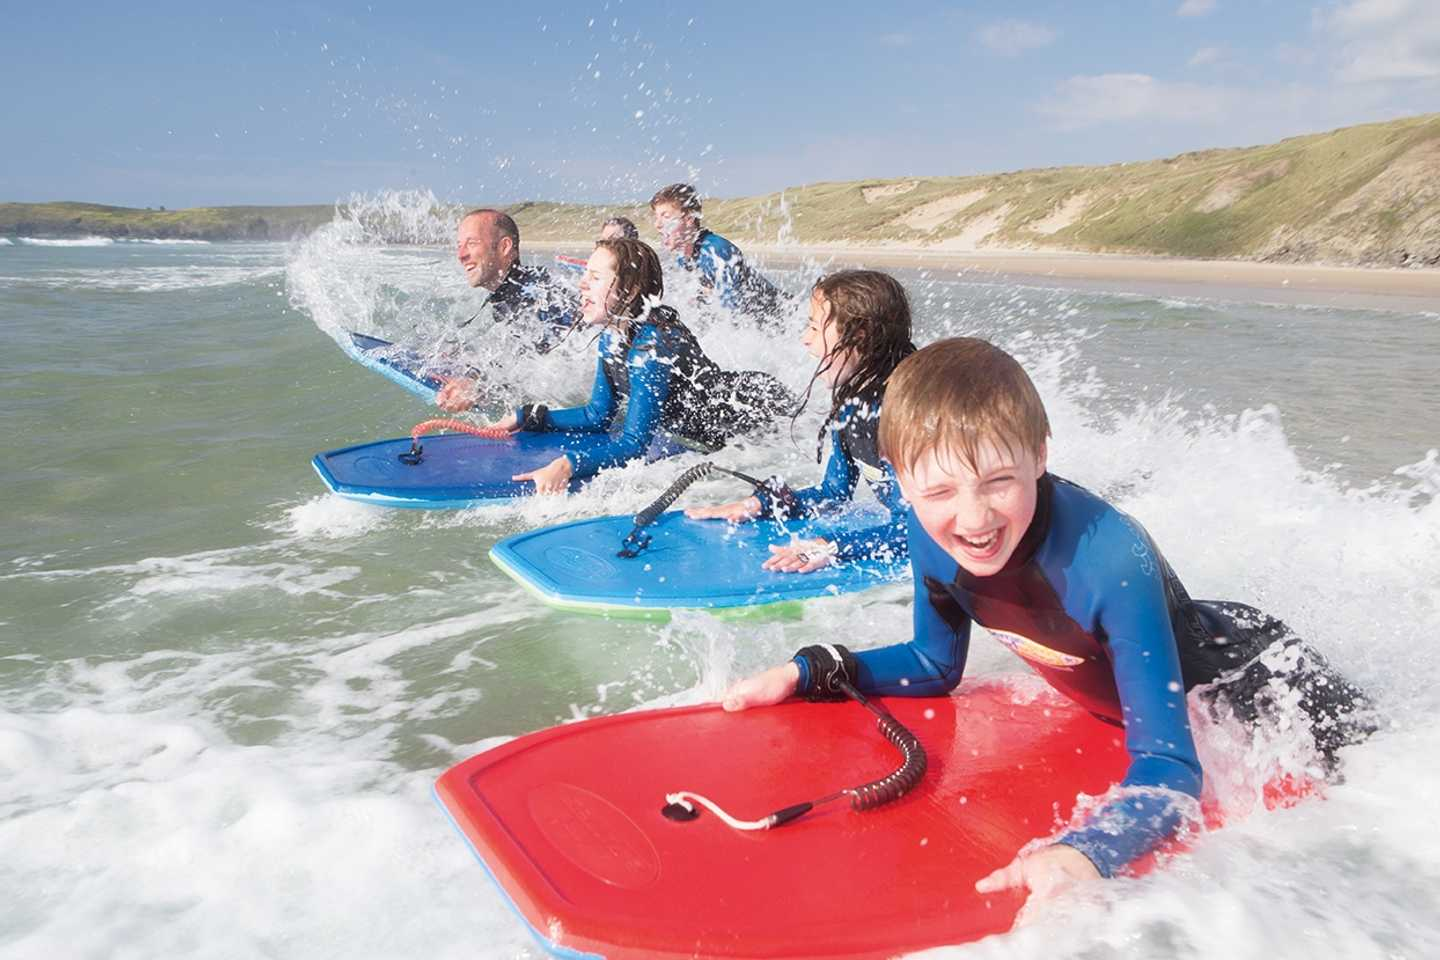 Guests surfing in the sea in Cornwall